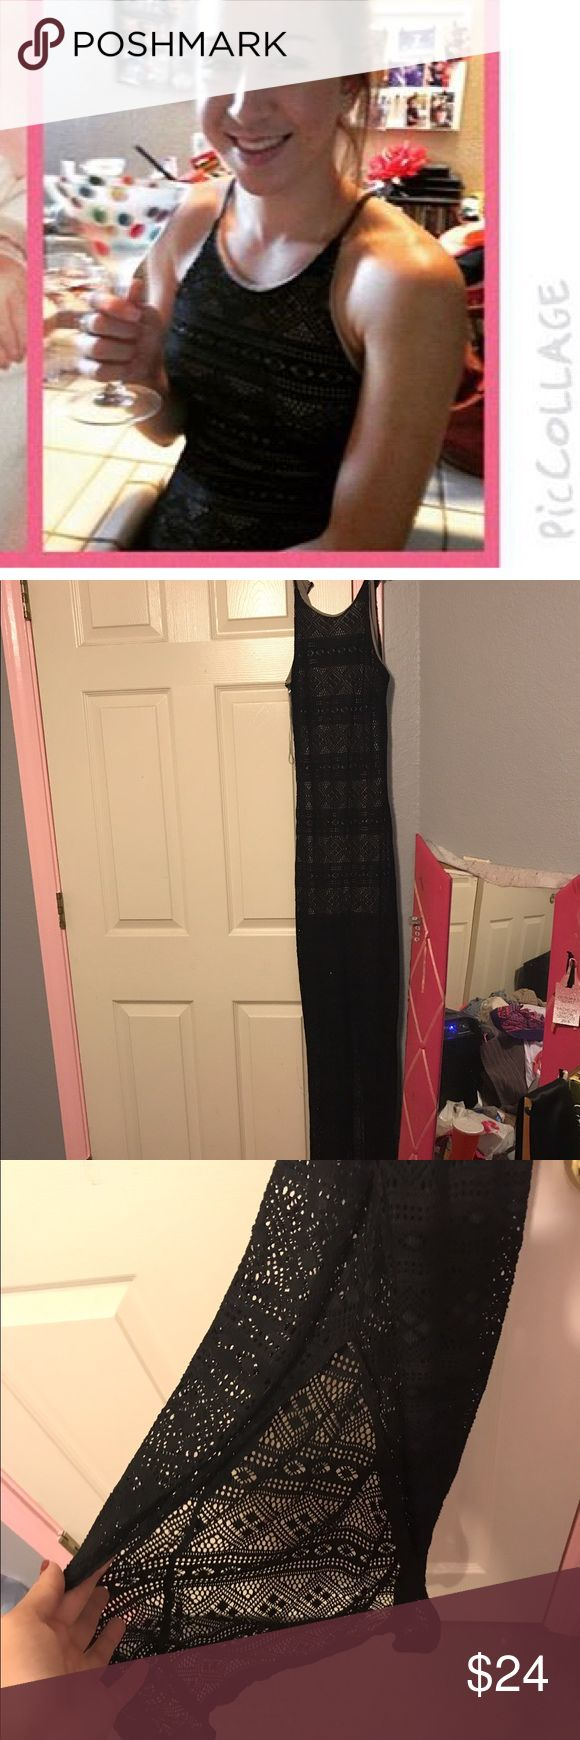 Black and Nude maxi dress beautiful black and nude maxi dress, form fitting has slit in the back as pictured. only worn a handful of times still in EUC Love Culture Dresses Maxi